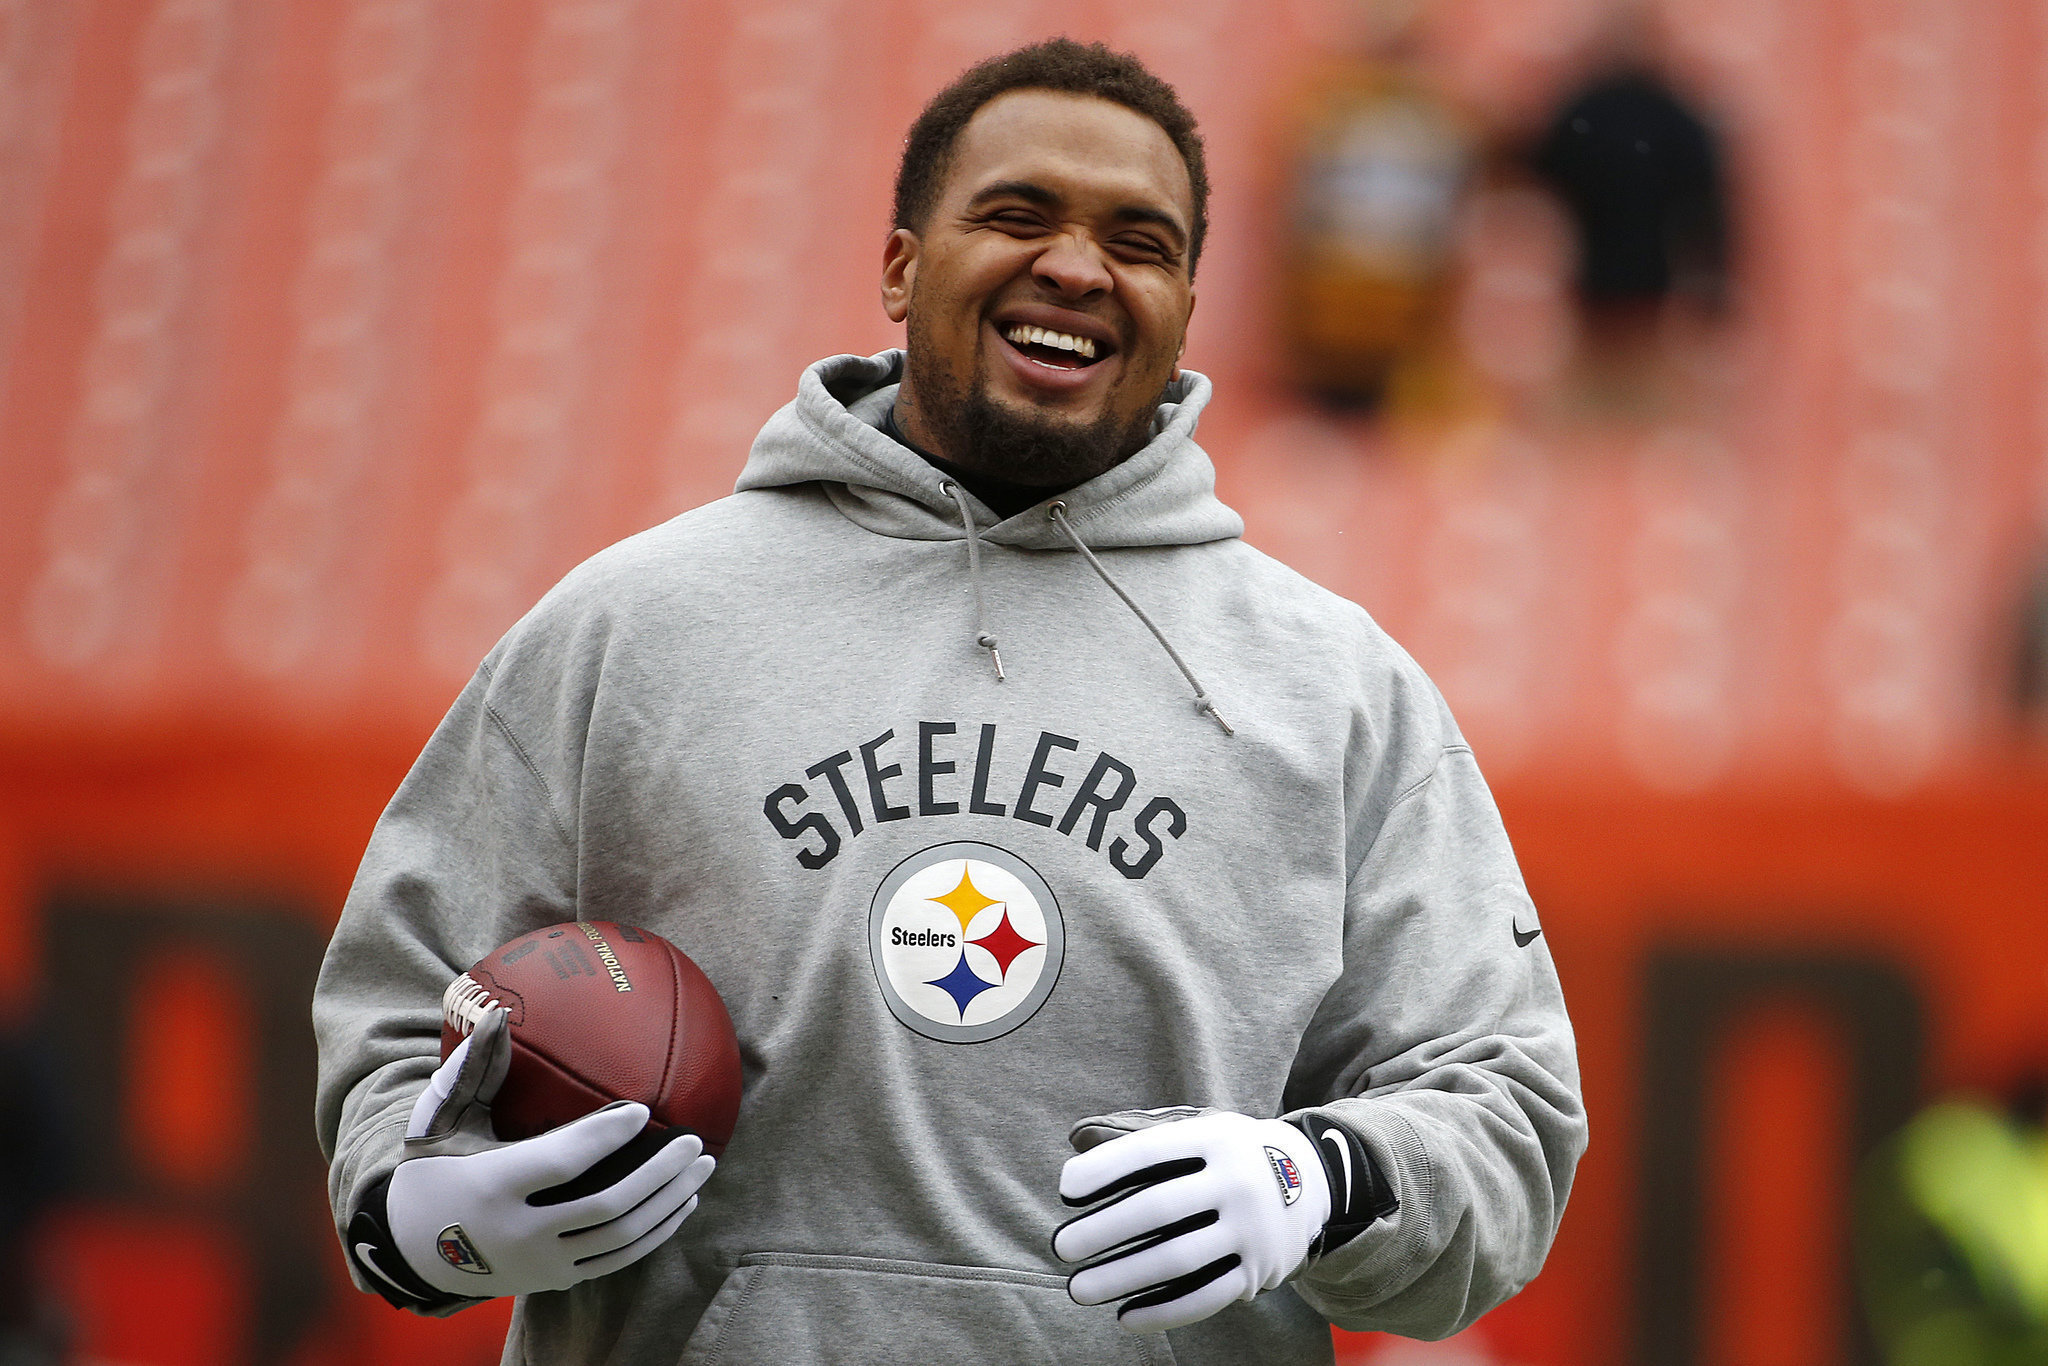 Steelers vs Dolphins Unlike coaches Maurkice Pouncey says